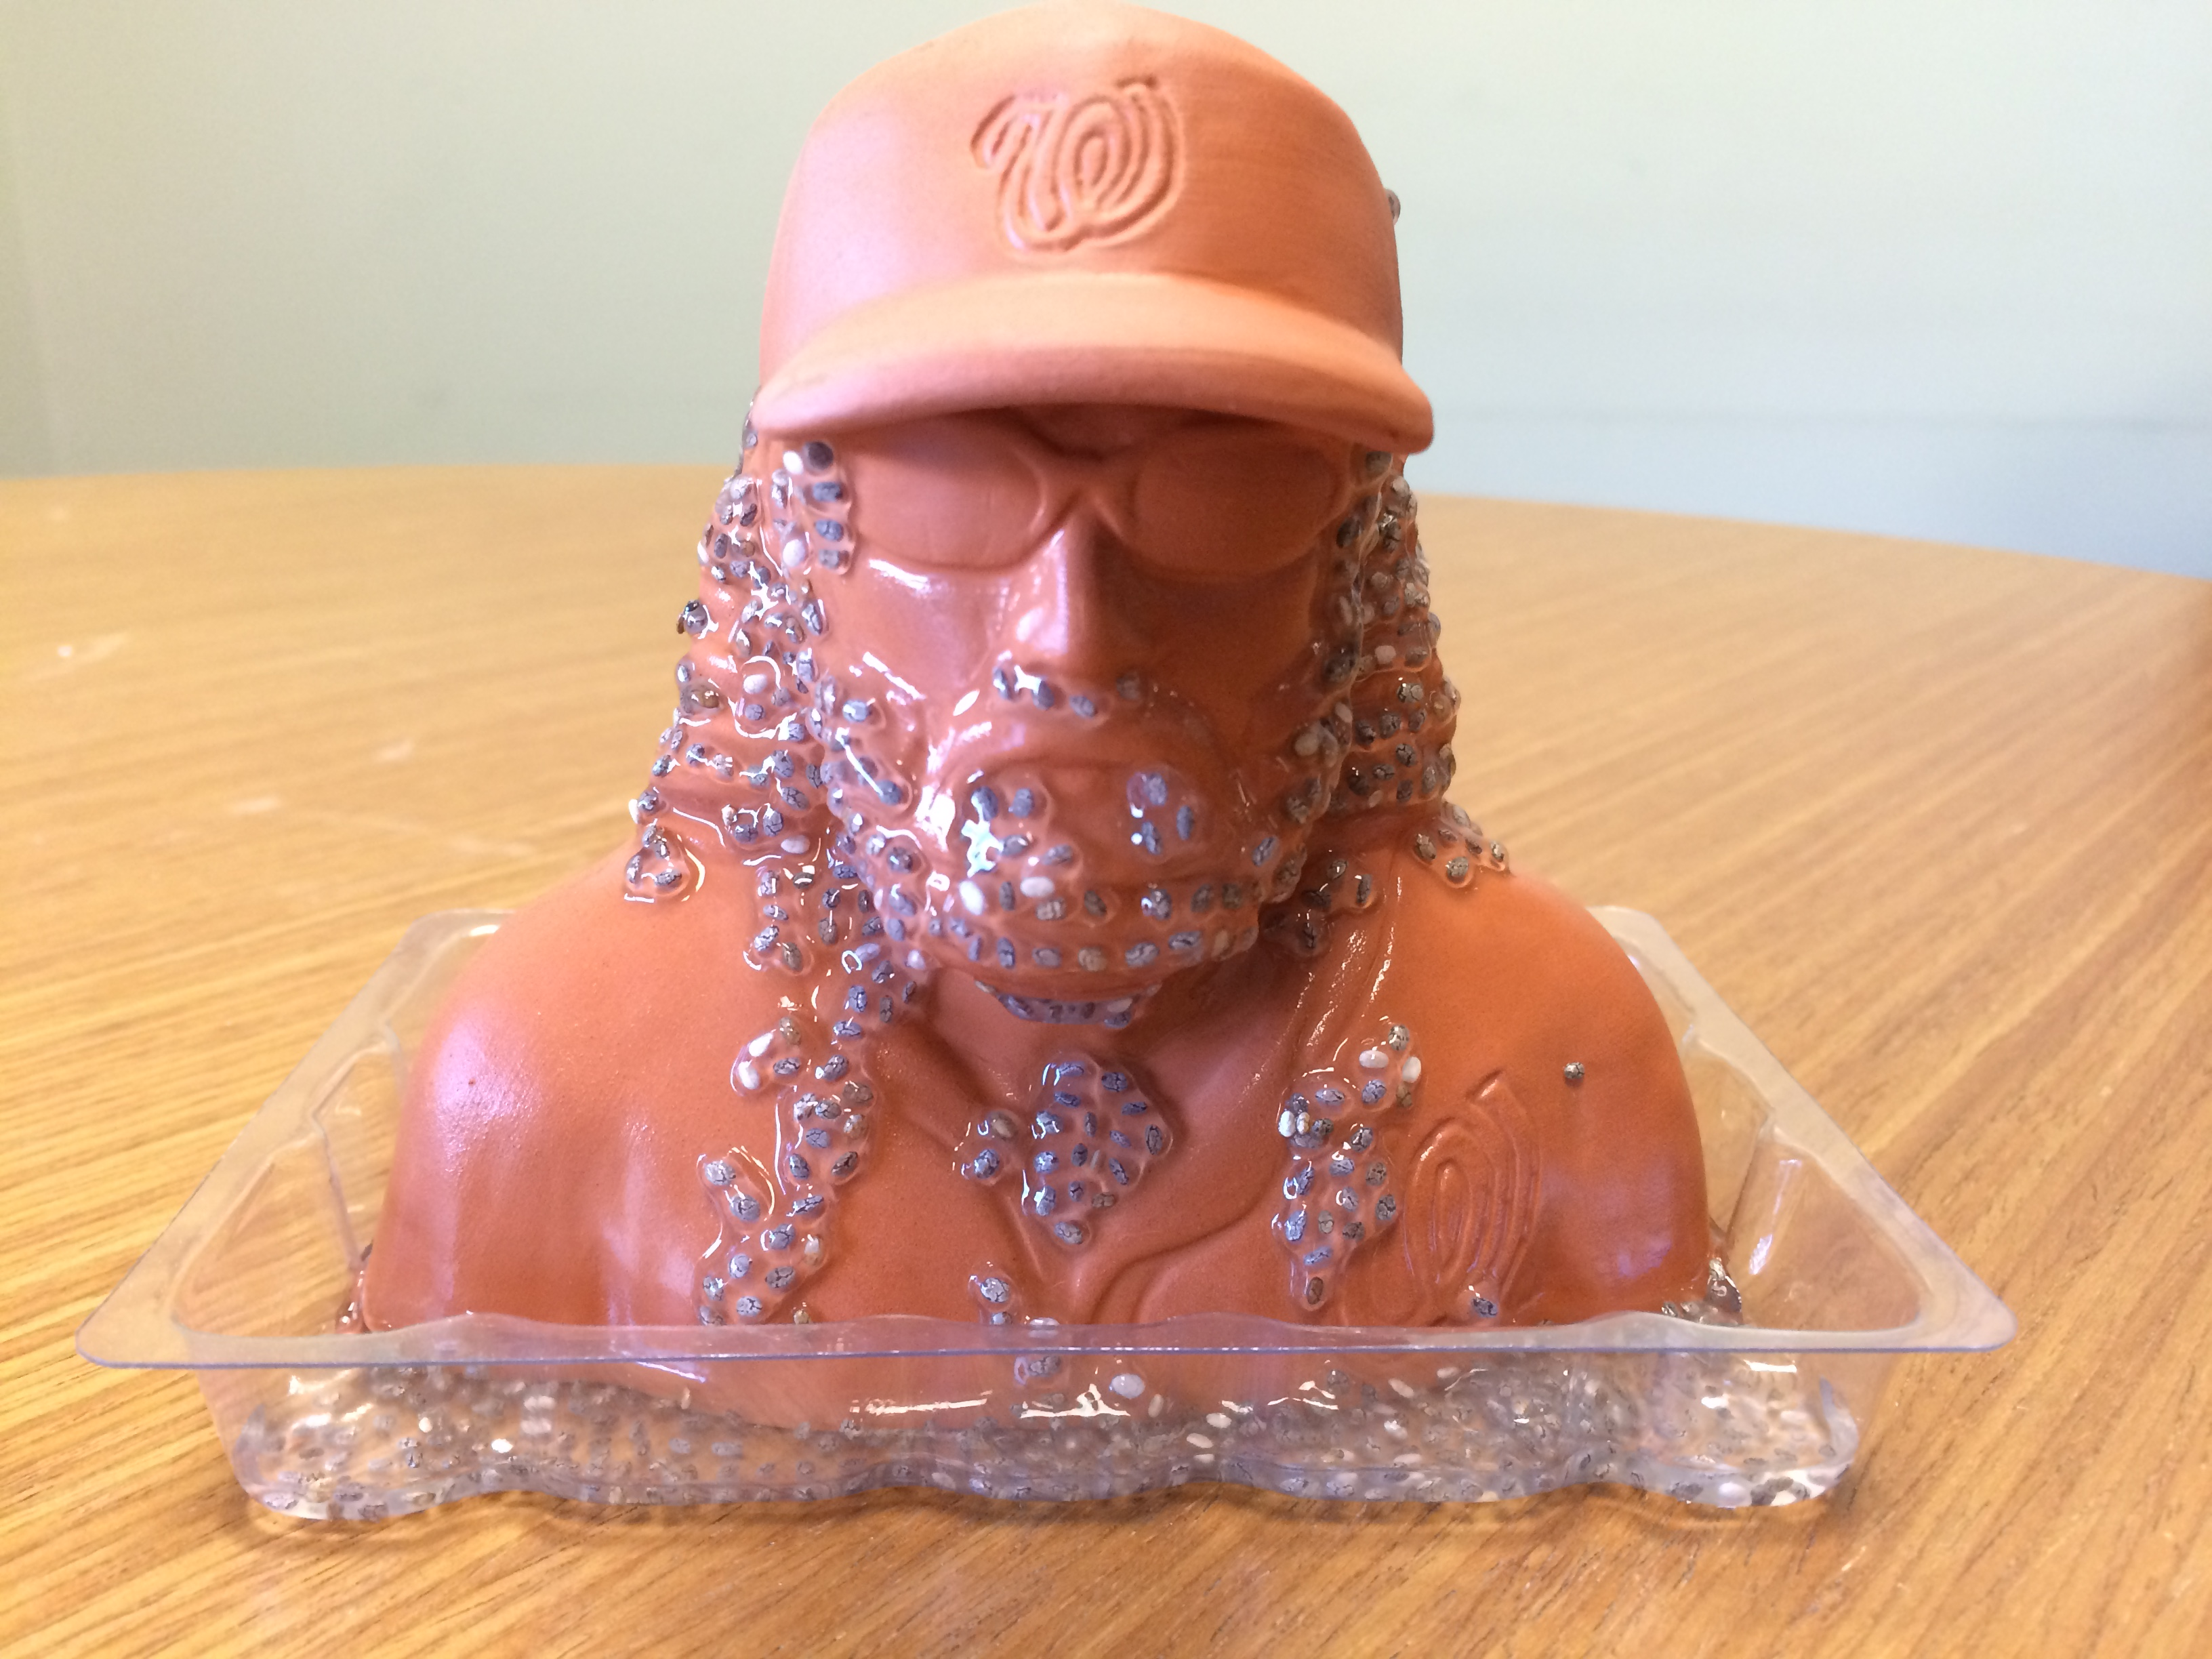 Is Chia Jayson Werth's beard a harbinger of his performance?